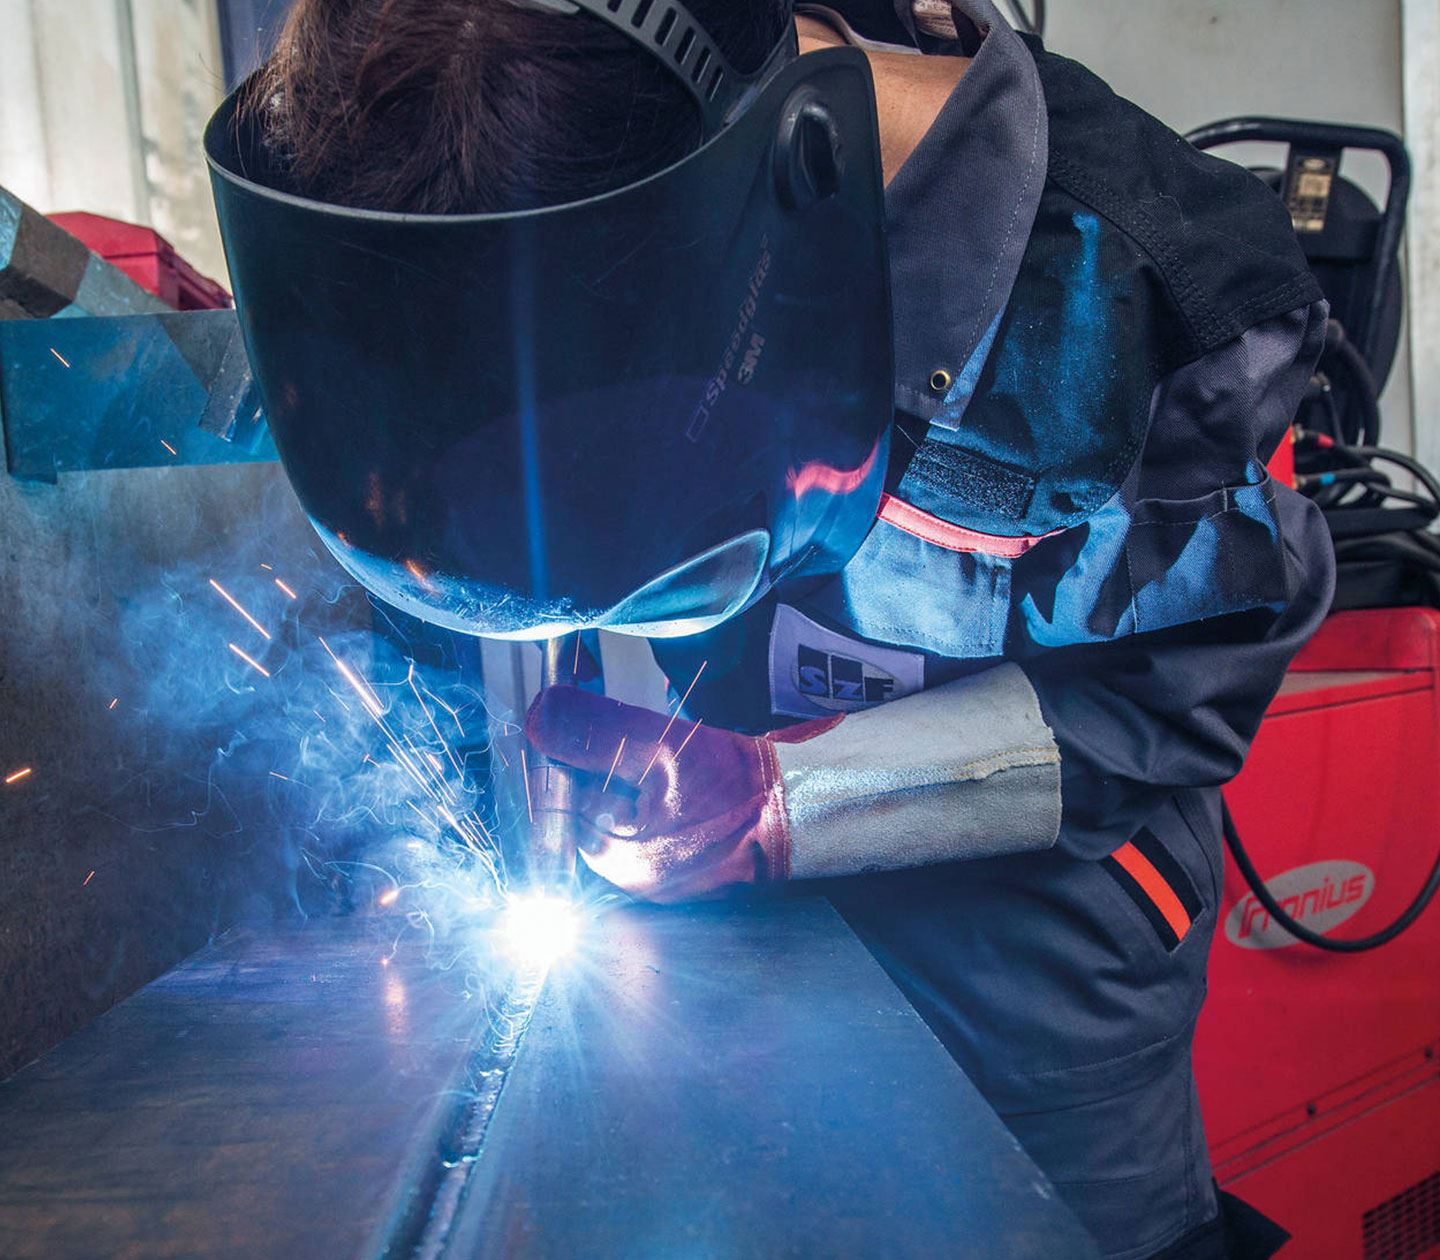 Welding training with a virtual trainer | magazine